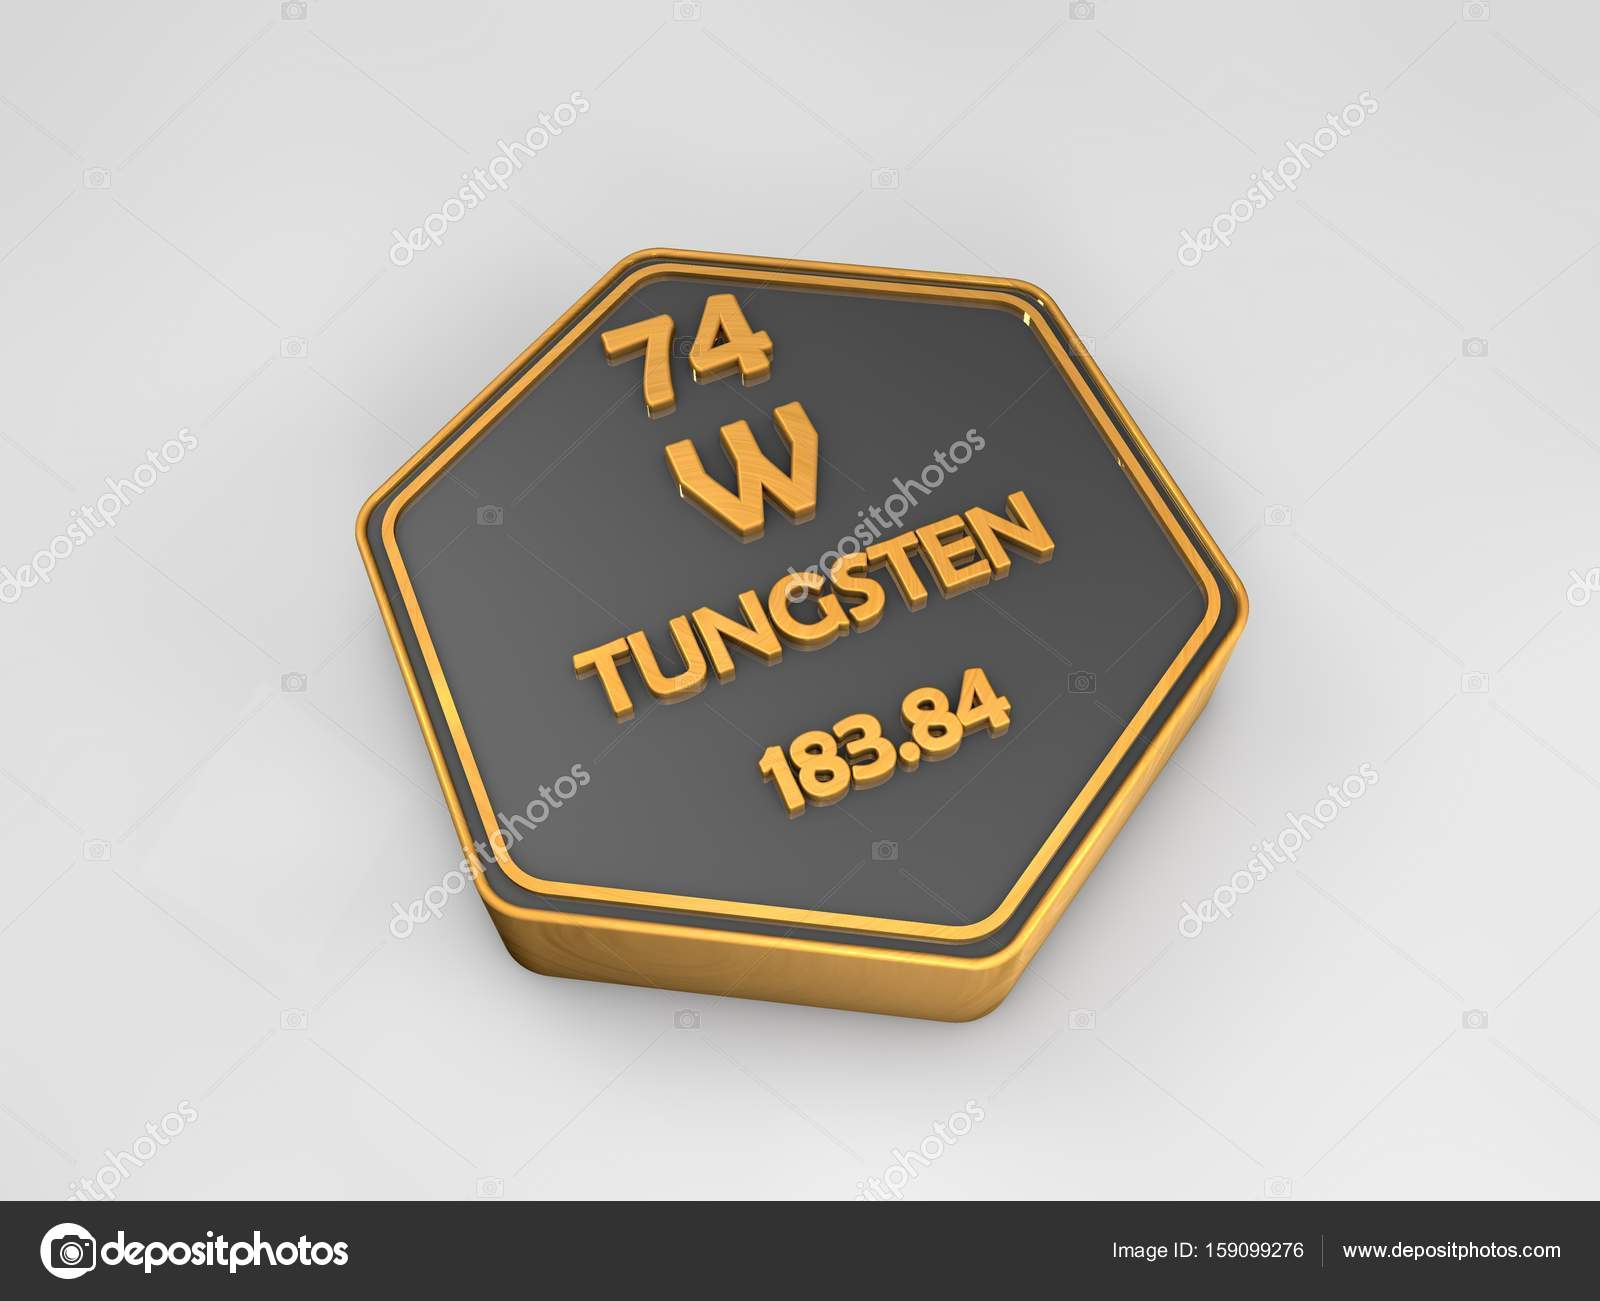 Tungsten w chemical element periodic table hexagonal shape 3d tungsten w chemical element periodic table hexagonal shape 3d render stock photo urtaz Gallery